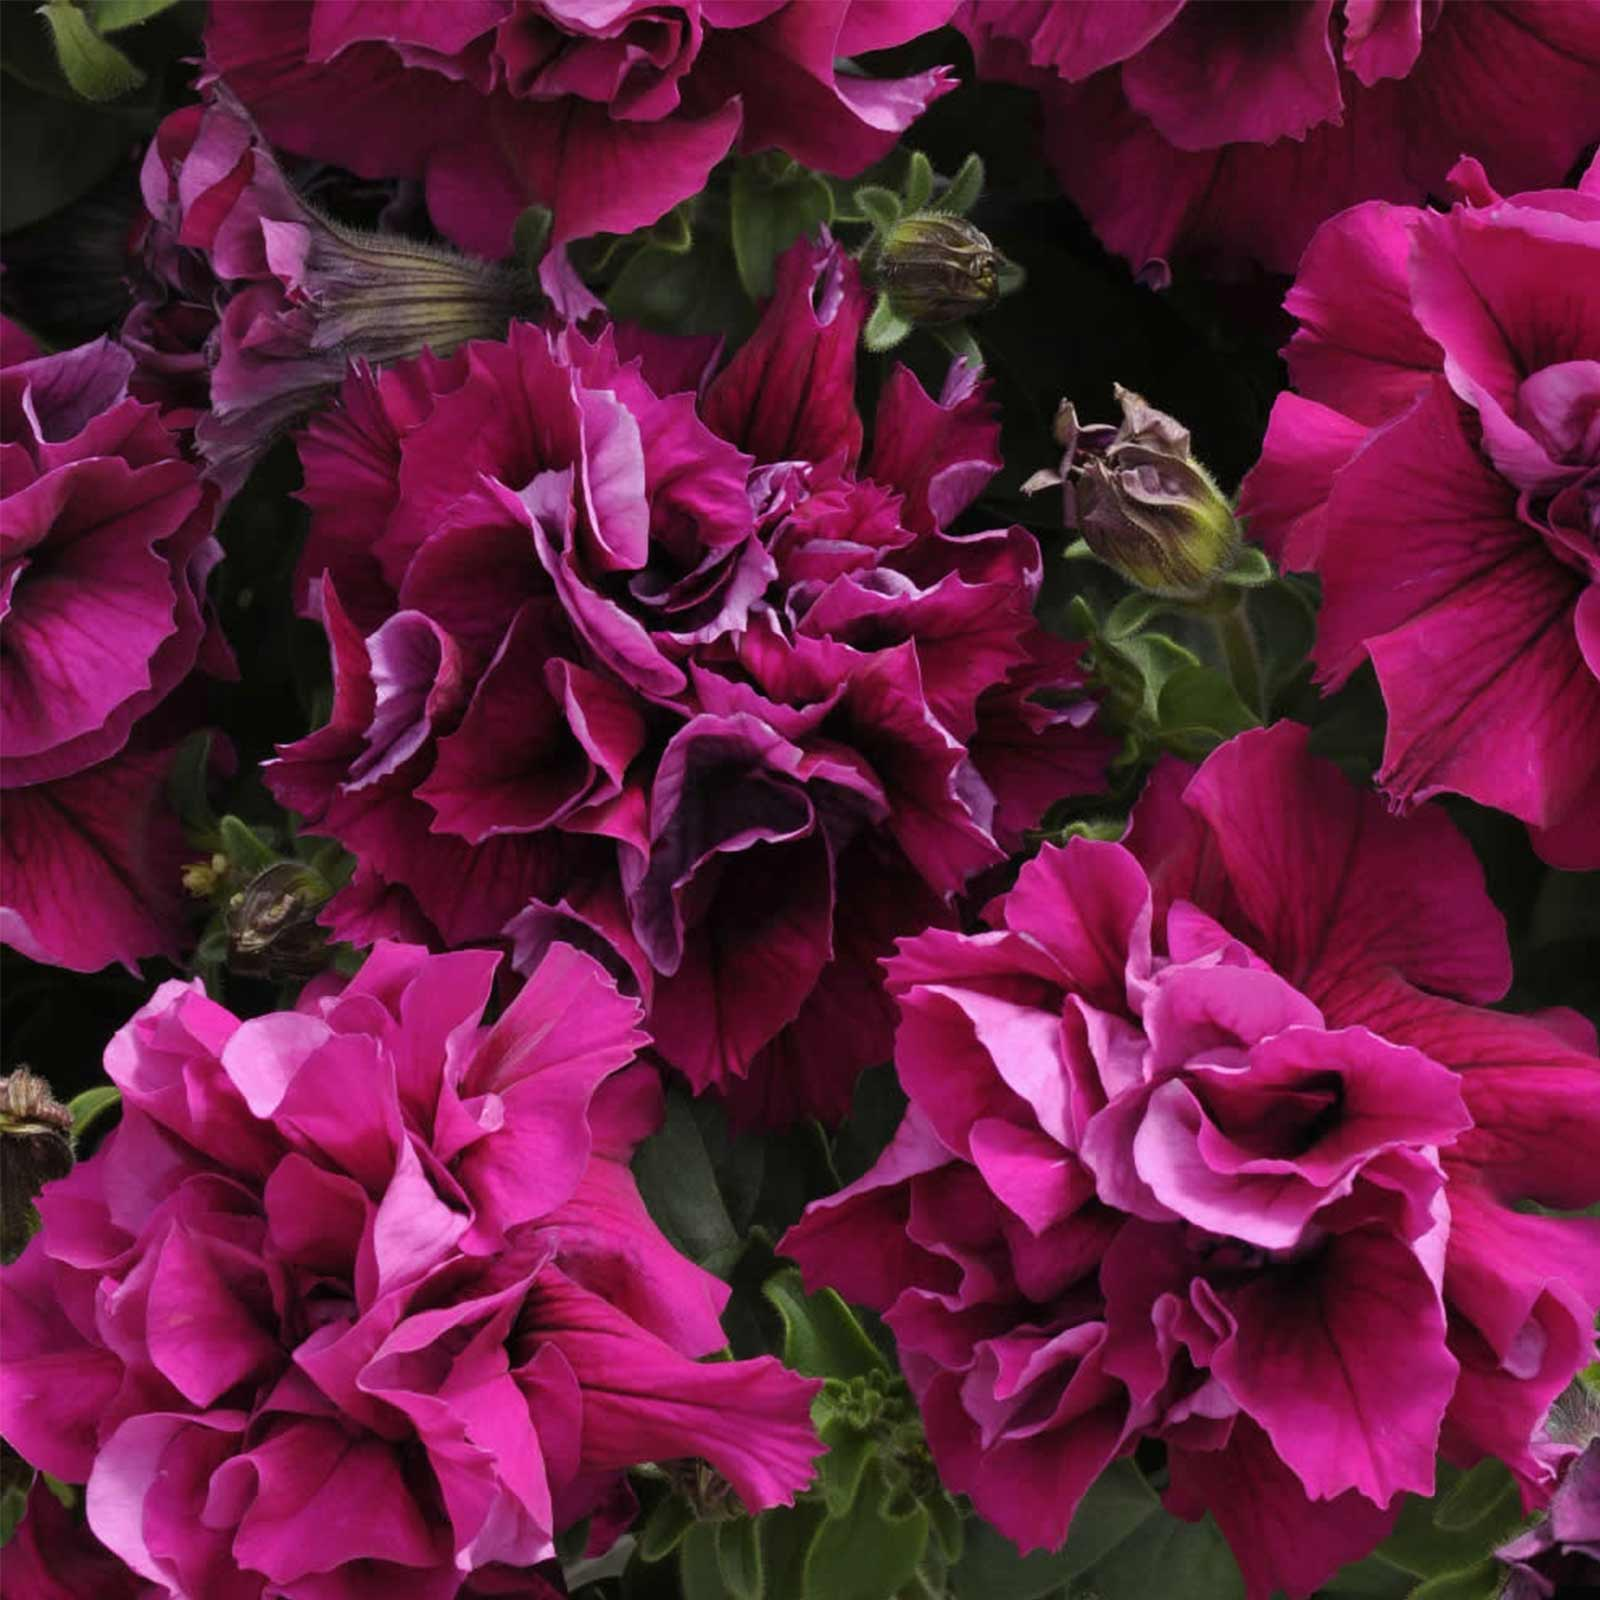 Petunia - Double Madness Series Flower Garden Seed - 1000 Pelleted Seeds - Color Mix Blooms - Annual Flowers - Double Floribunda Petunias